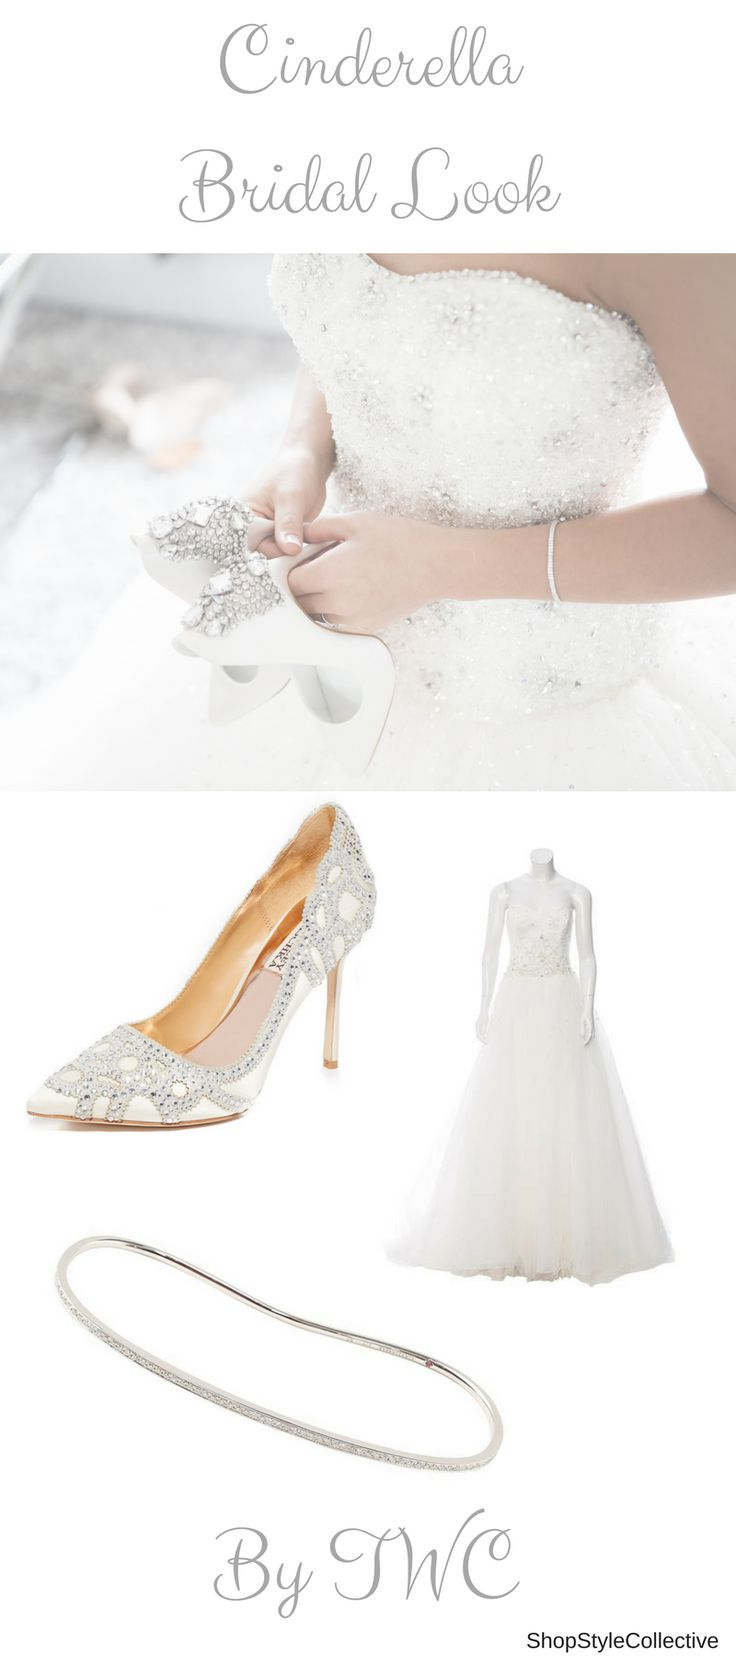 A Cinderella bridal look is one of our most favorites! The embellished corset with a tulle skirt, super gorgeous diamante wedding shoes and a diamond bracelet to round everything off. This great dress suits all brides' body types and shapes and will make you feel like the princess you are!